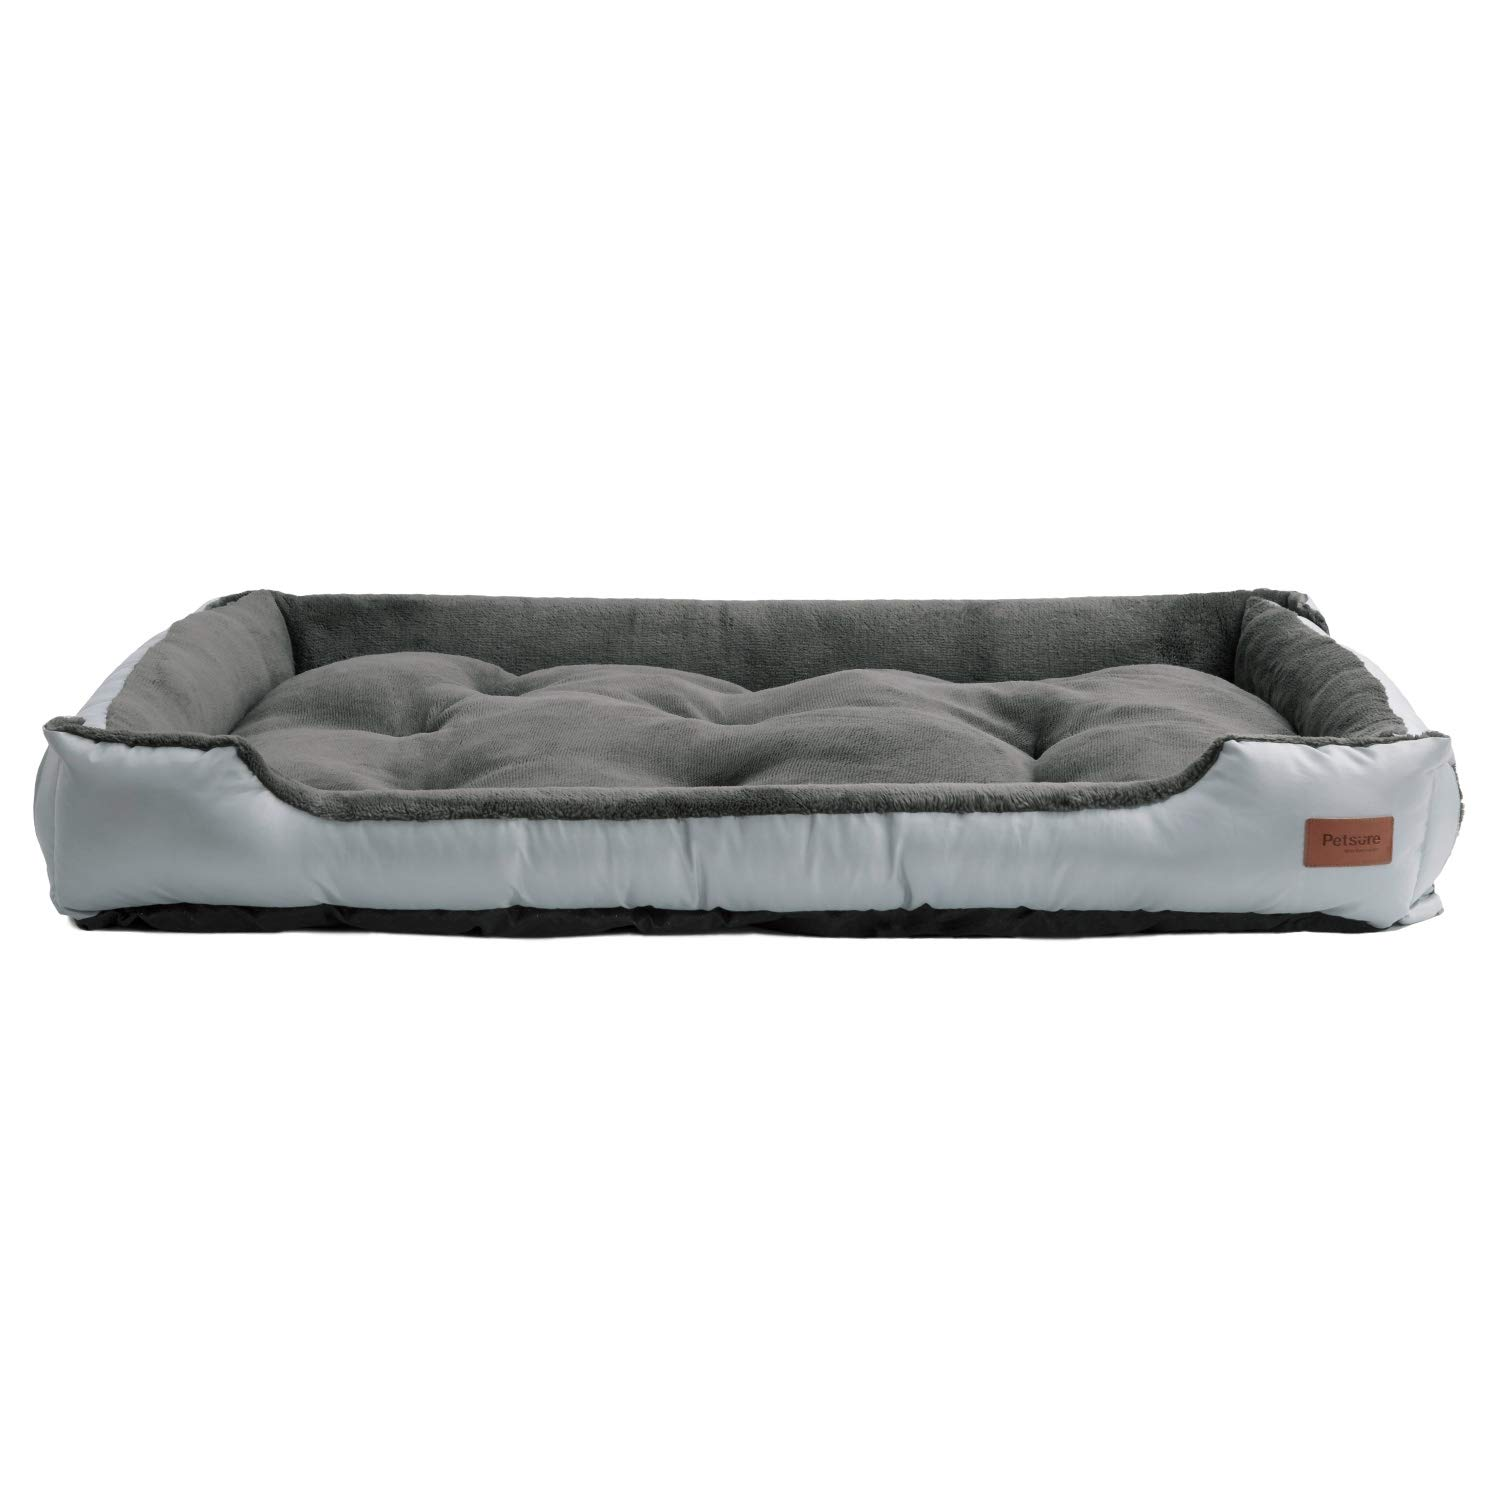 Petsure Dog Bed - Cozy Cuddler with Comfortable Bolster, Ideal for X-Large Dogs - Grooved Nonslip Pet Bed with Hook and Loop - Machine Washable, XXL Dog Bed (37.4x27.6x6.3 inches), Grey